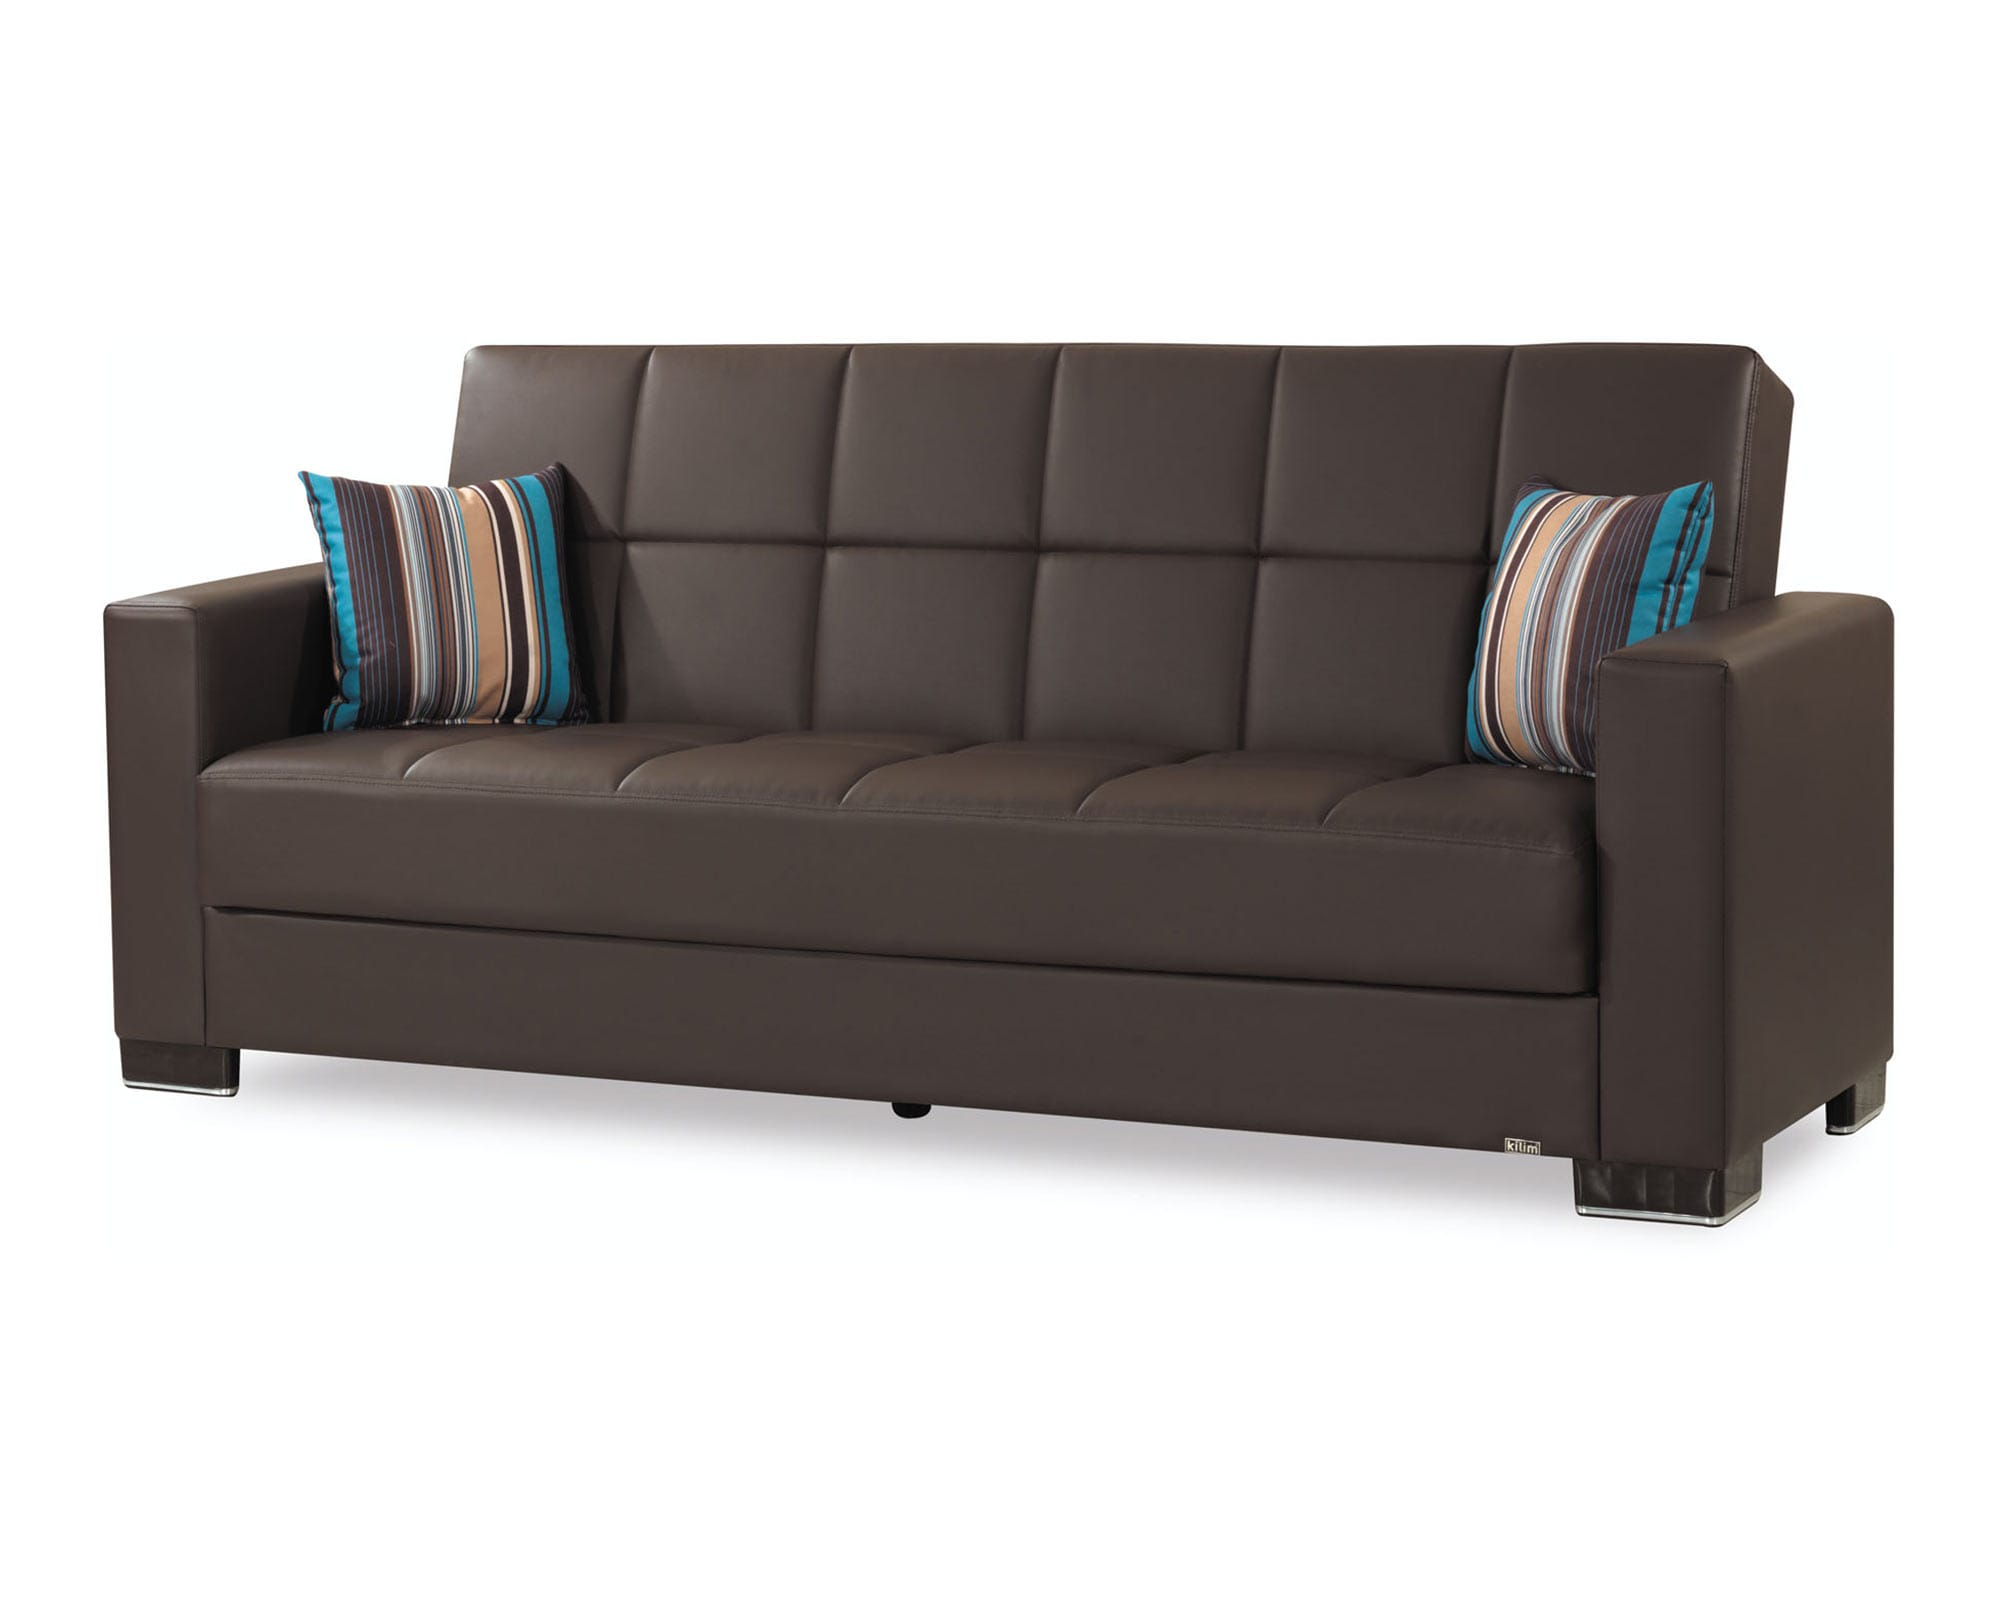 Beau Armada Brown PU Sofa Bed By Casamode (Casamode)